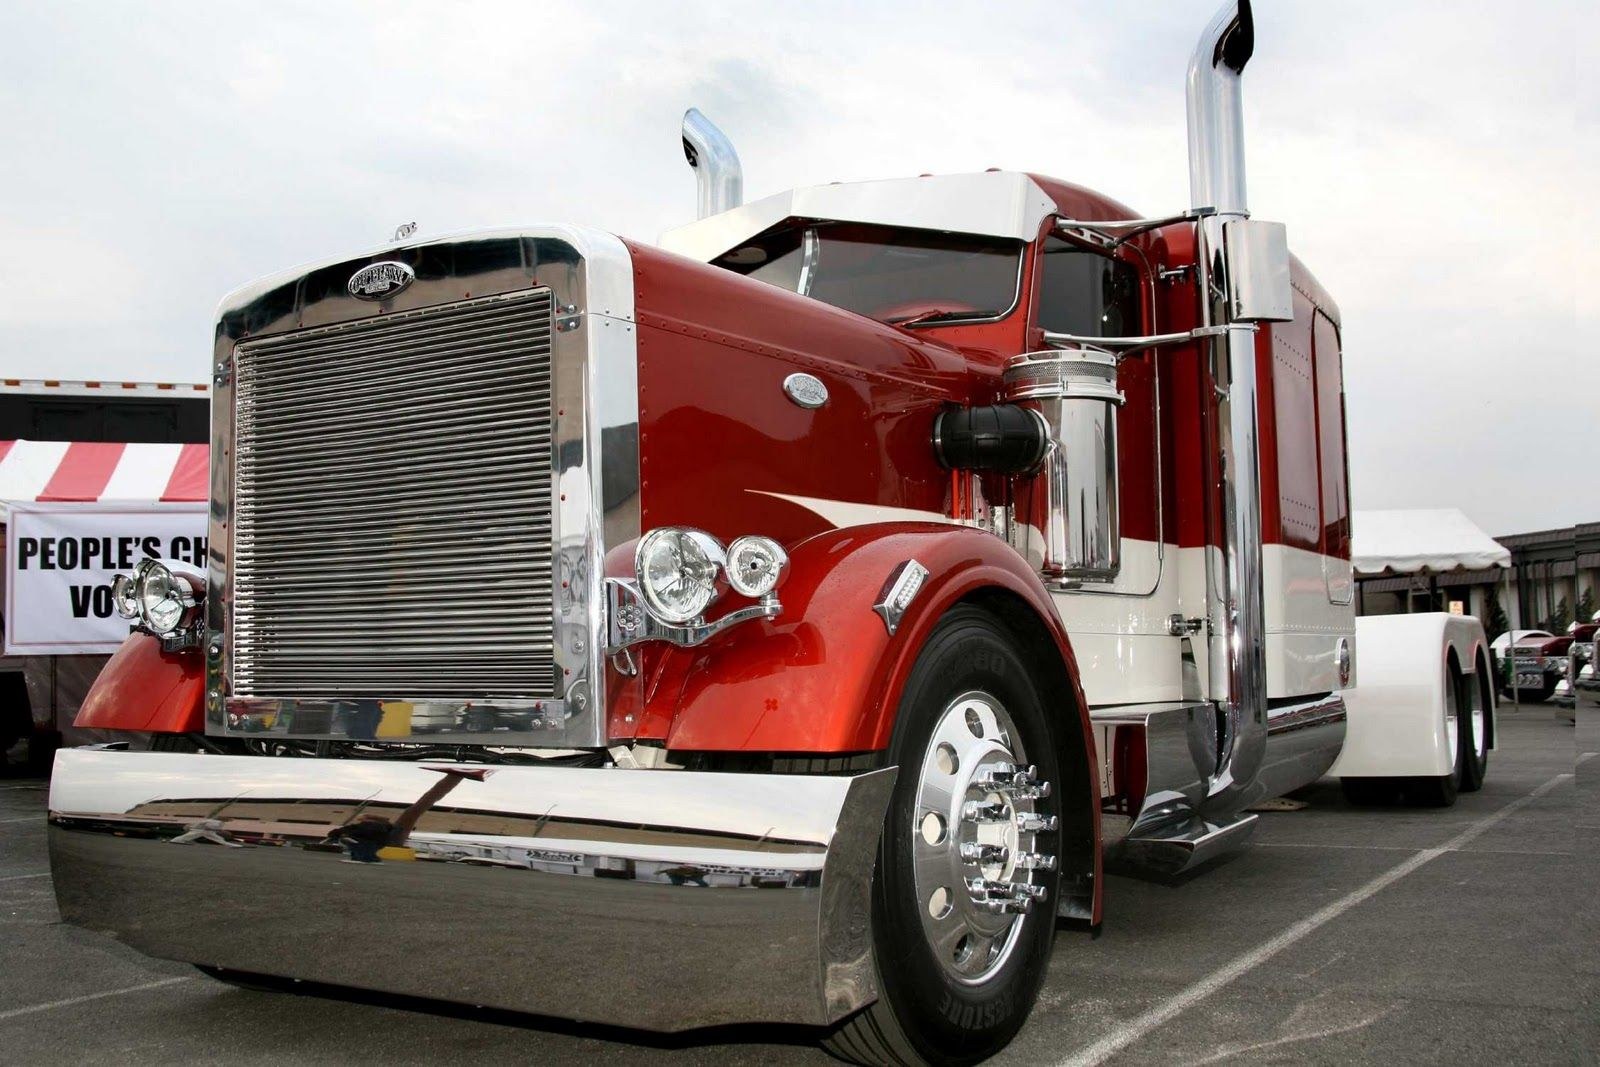 Beauitiful customized big rigs peterbilt big rig tire change over